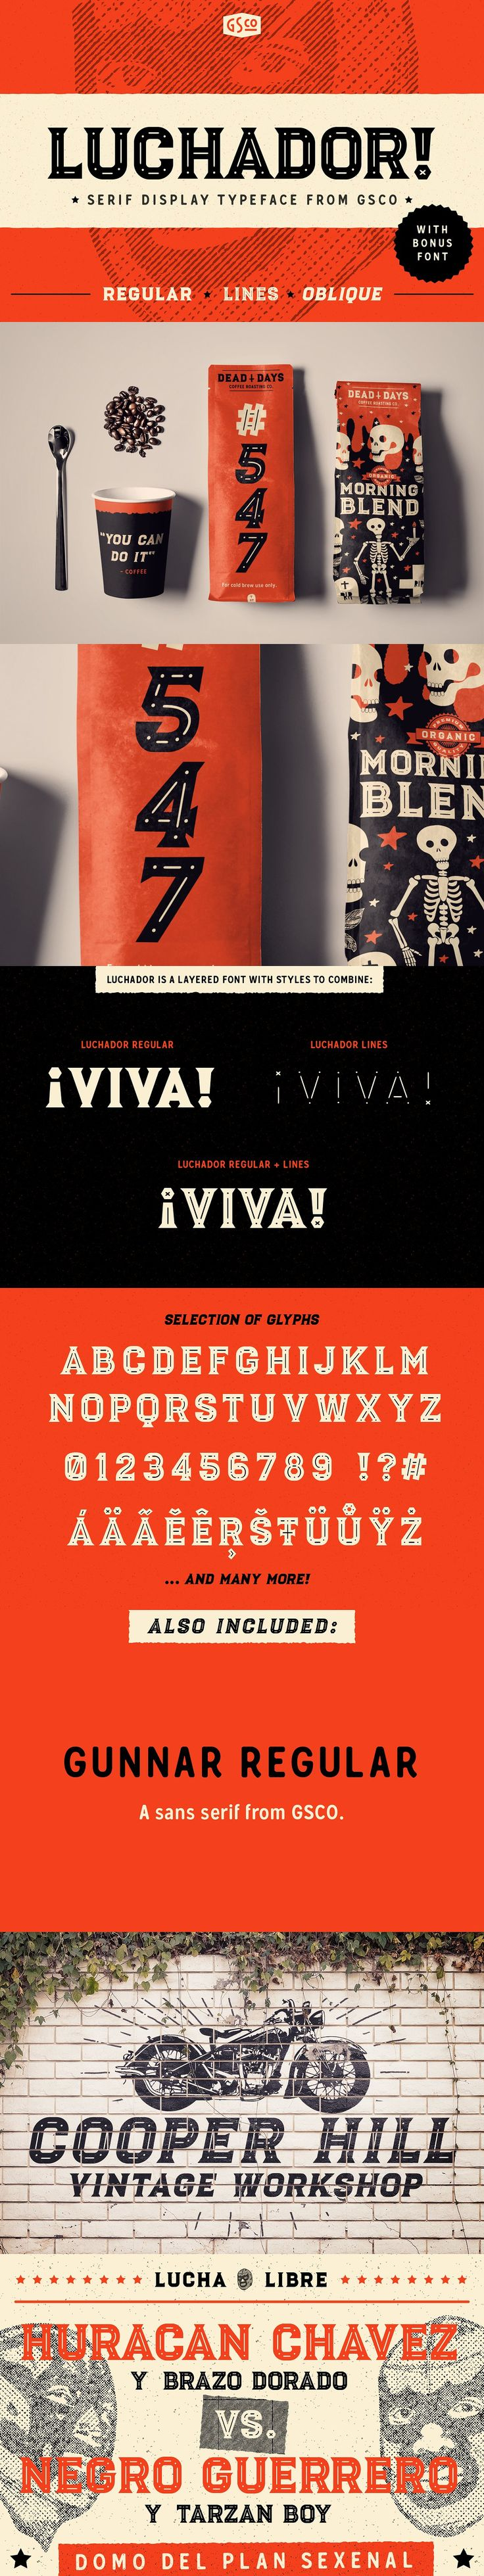 Affiliate | Luchador is a serif display typeface in two styles with layered ornaments that will pack your next creative project full with weight, character and charisma like a mexican wrestler.In this pack you'll findLuchador RegularandLuchador Obliqueas well as an ornamental bonus -Luchador Lines. All styles have over 300+ glyphs and supports a great amount of international languages.